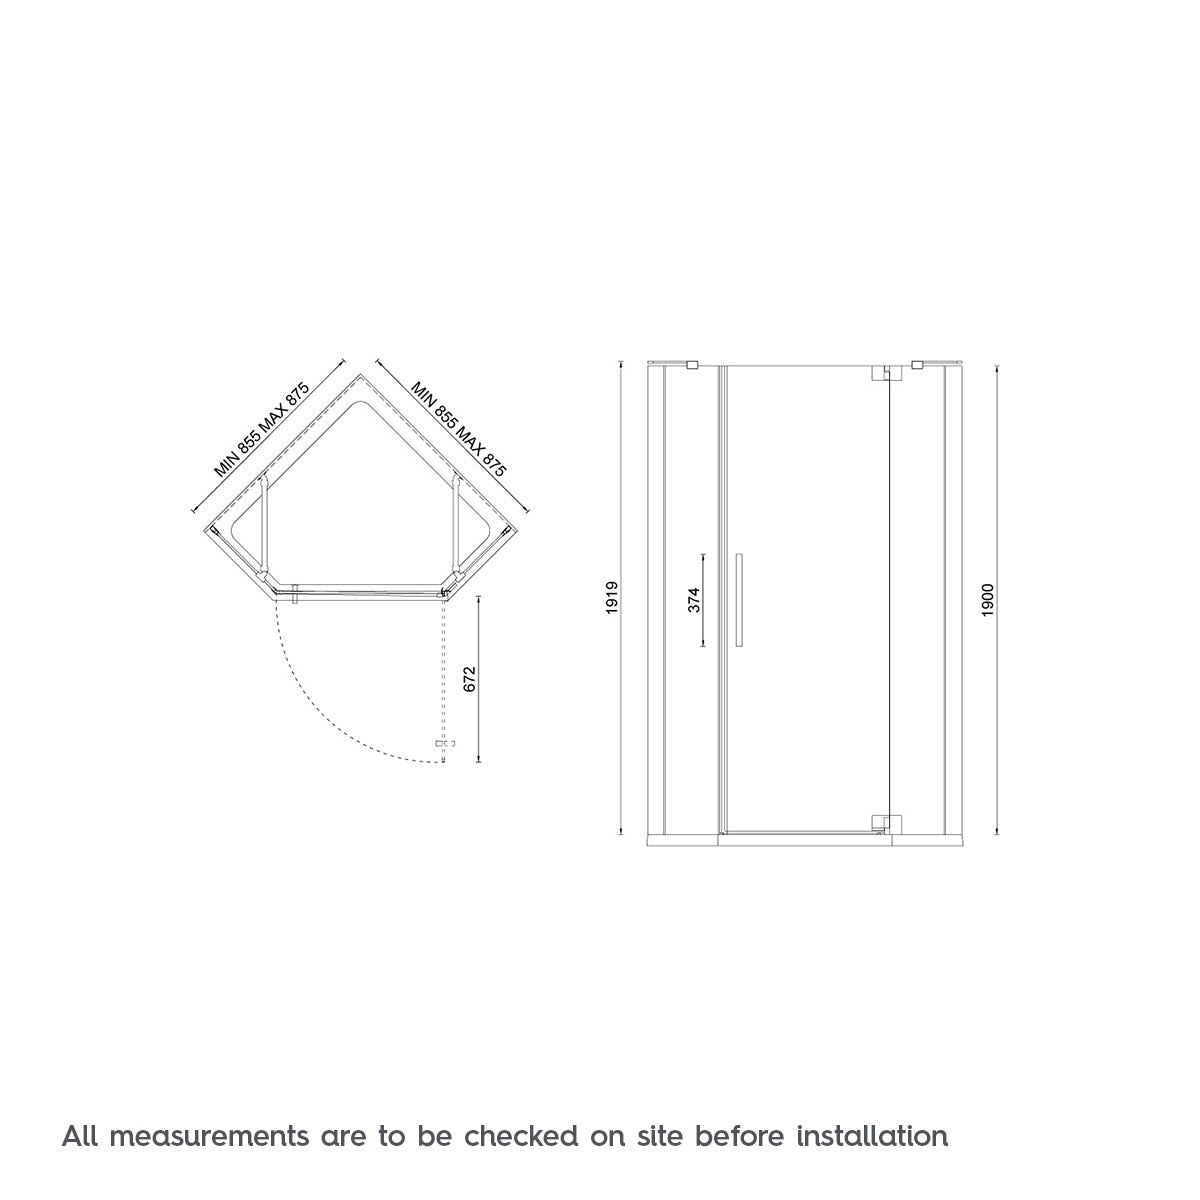 Dimensions for Mode luxury 8mm right handed frameless hinged pentagonal shower enclosure 900 x 900